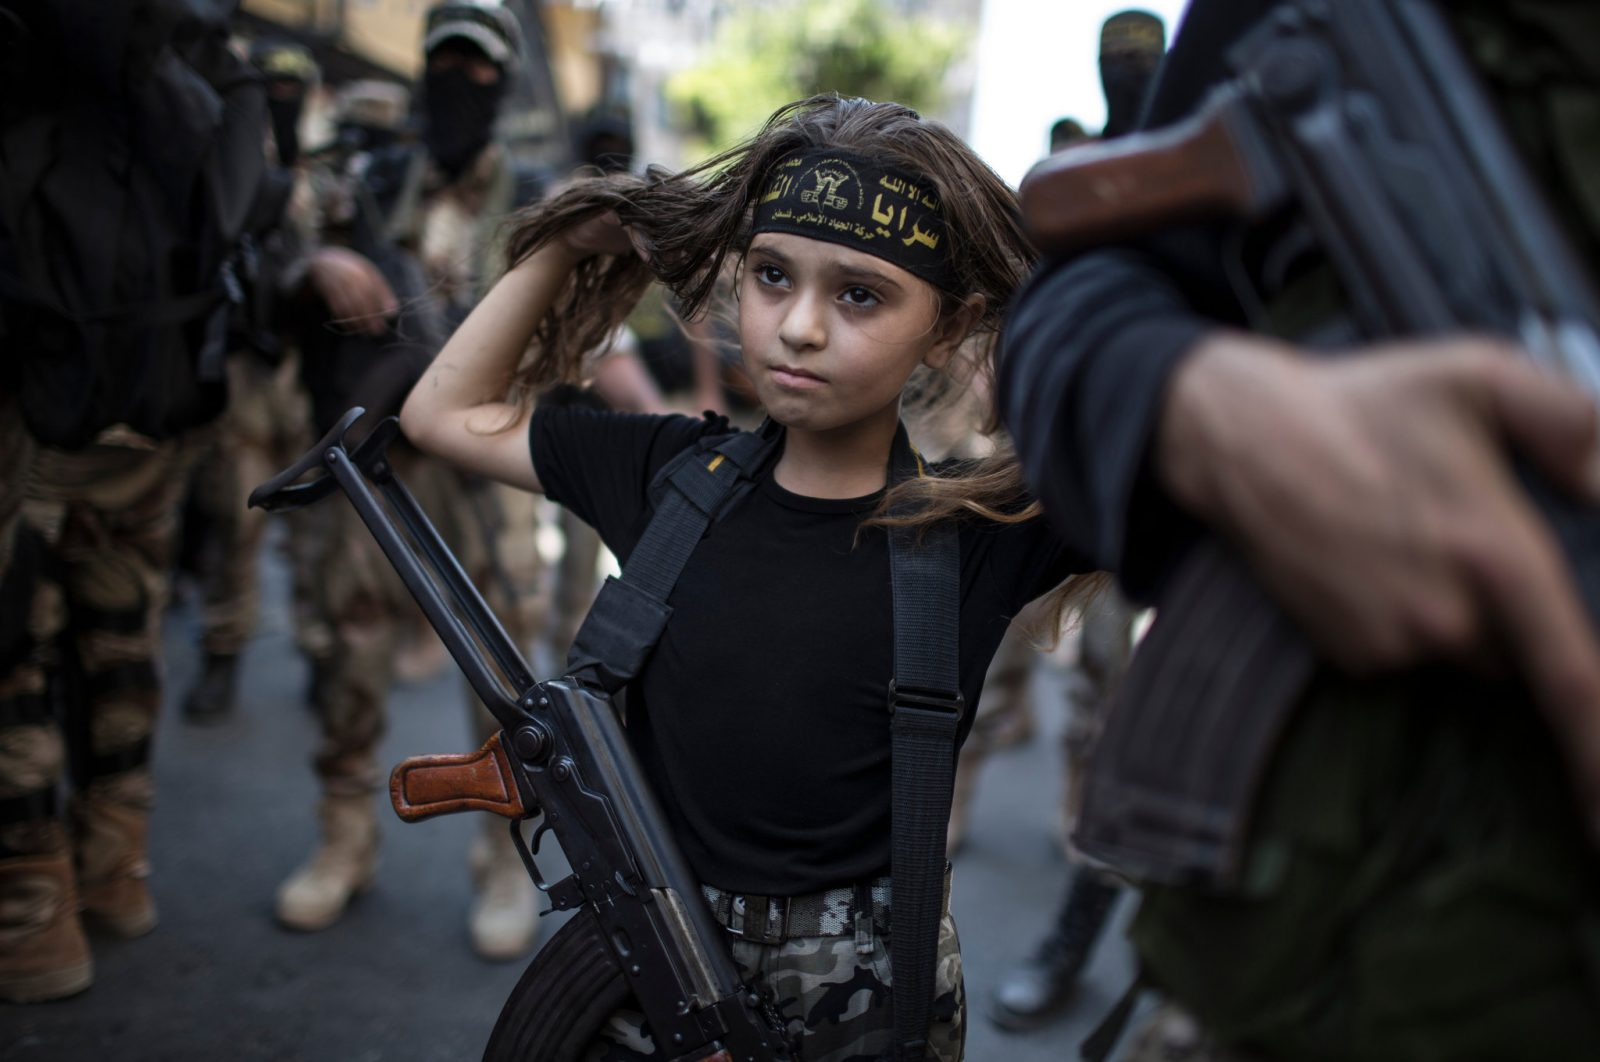 A Palestinian girl with a Kalashnikov rifle, amid Islamic Jihad militants in Gaza City Human Diversity